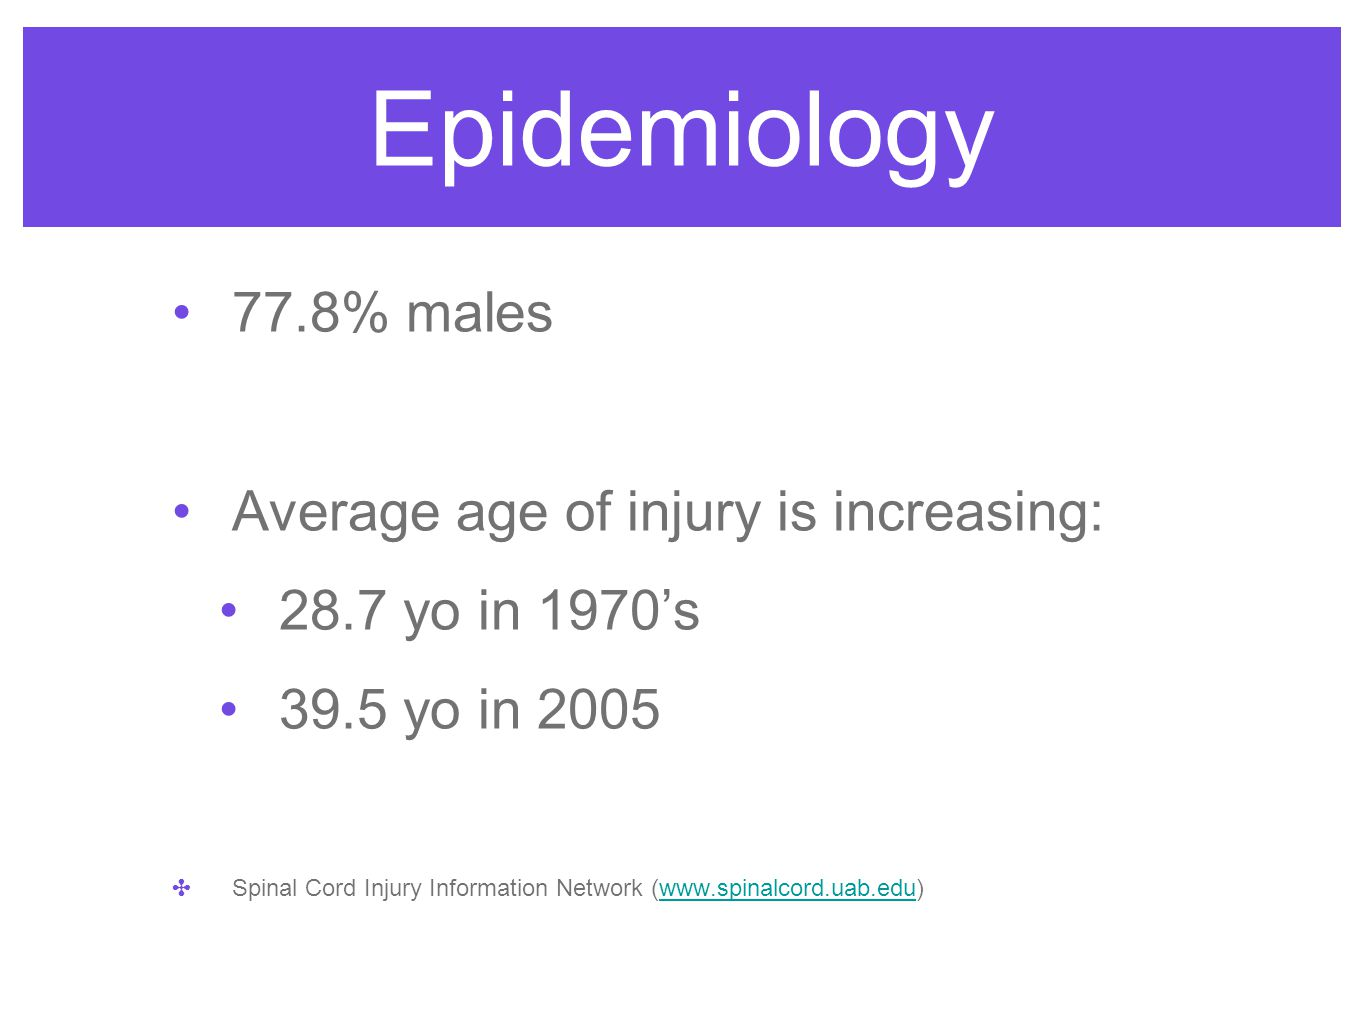 Epidemiology 77.8% males Average age of injury is increasing: